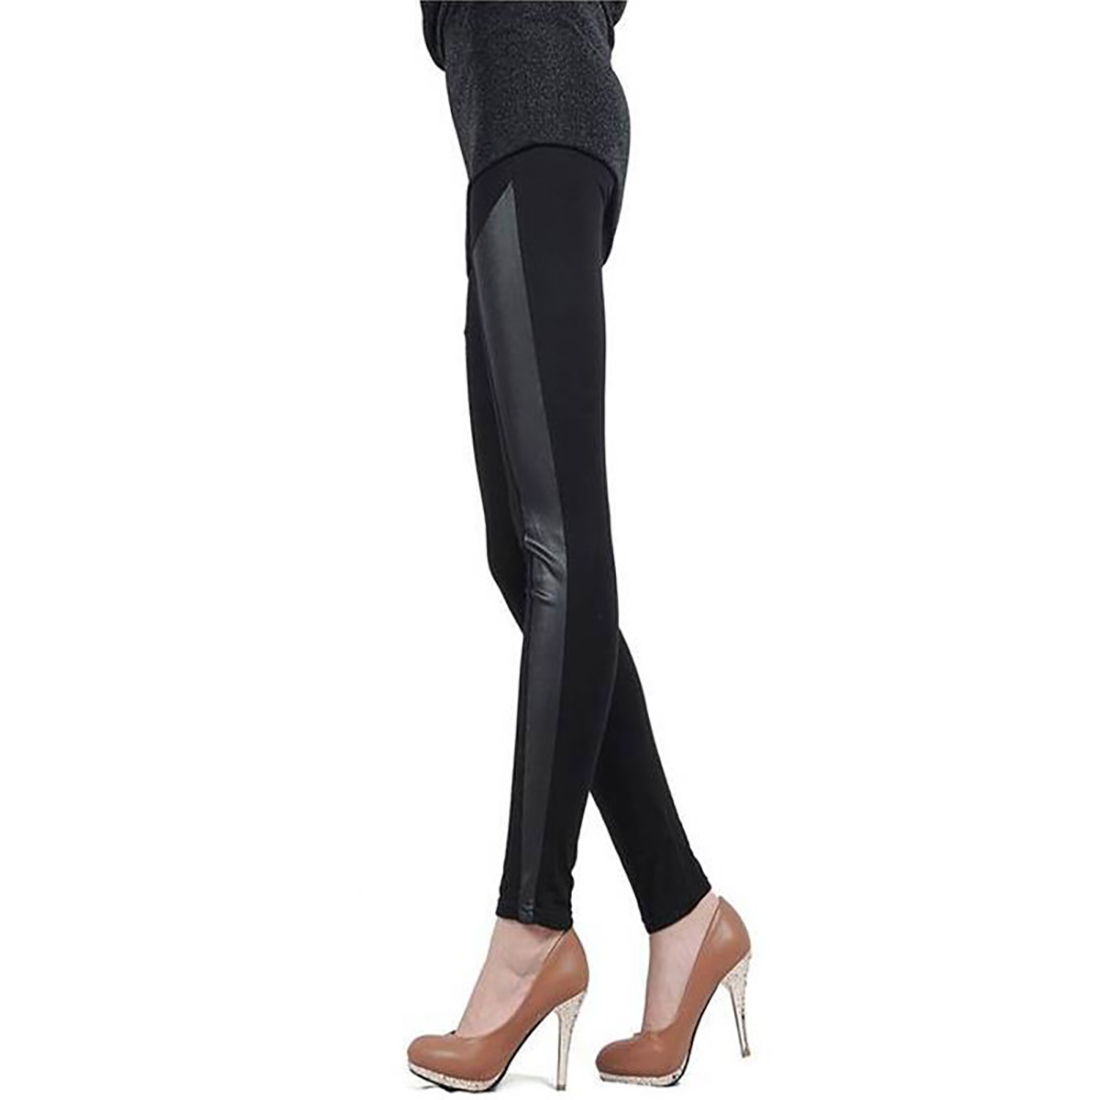 Trendy Women Winter Spring Soft PU Leather Polyester Patchwork Embellished Leggings Girls Casual Style Slim Sequin Leggings